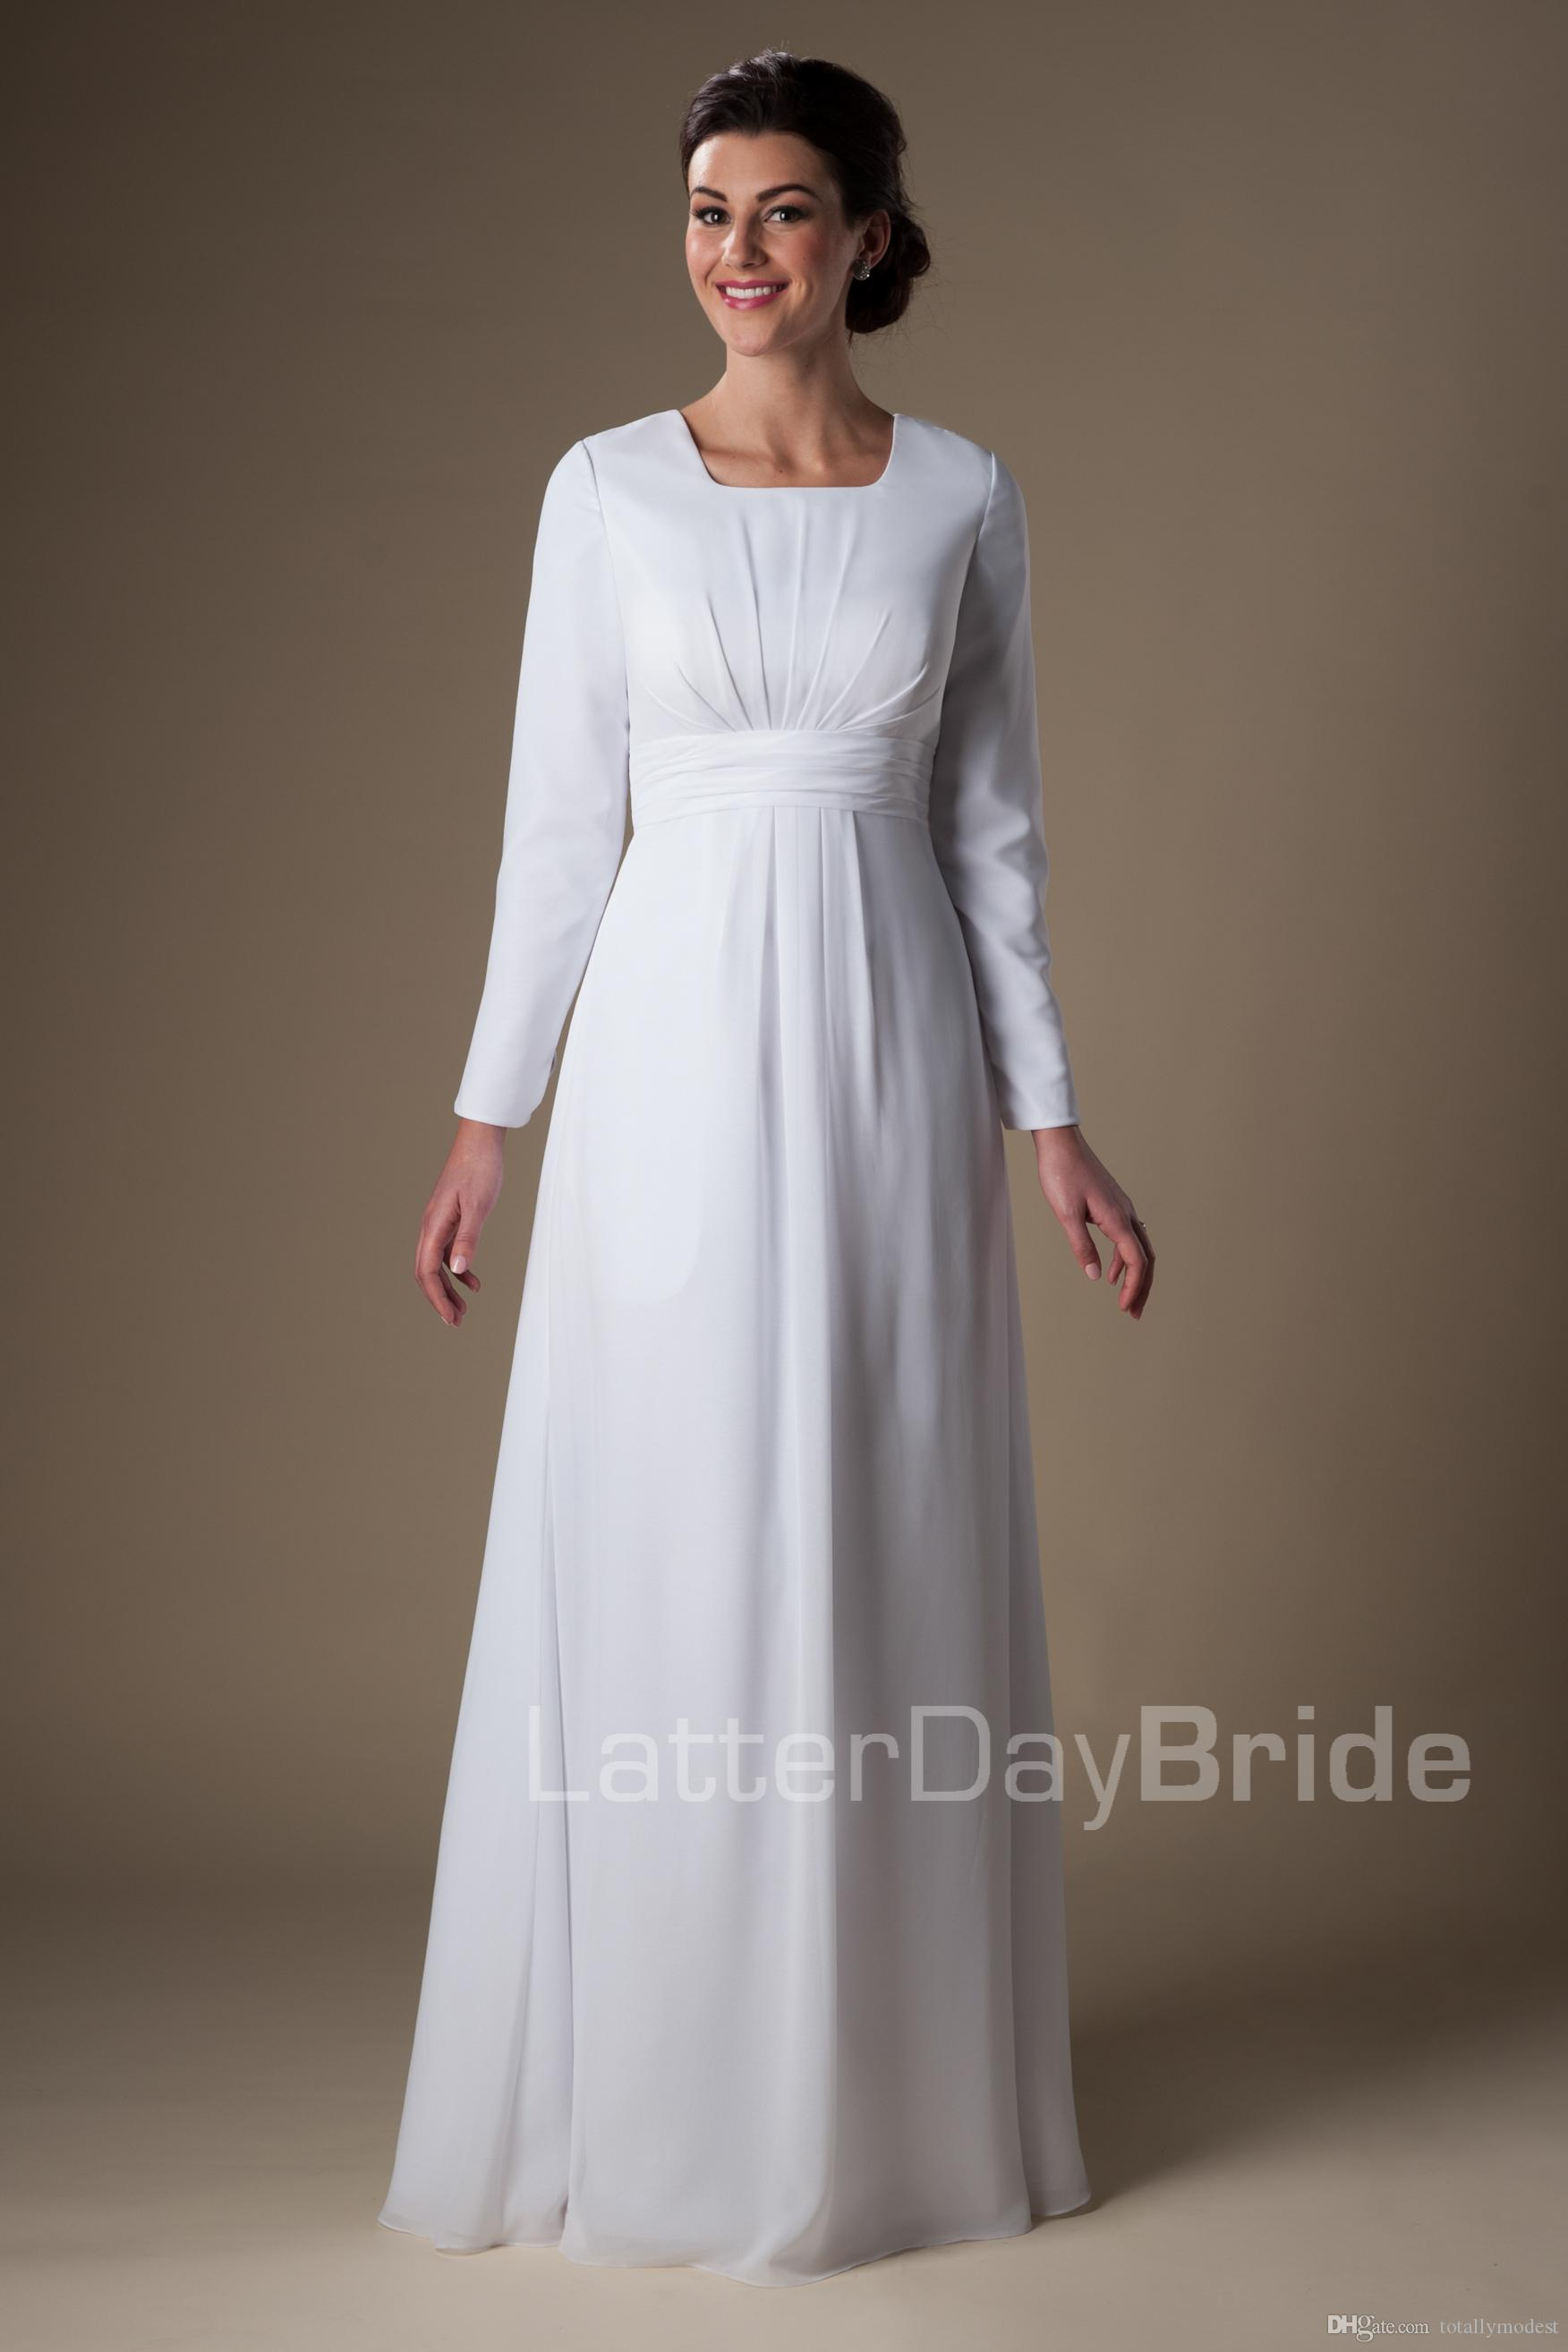 Dhgate Wedding Gowns 017 - Dhgate Wedding Gowns